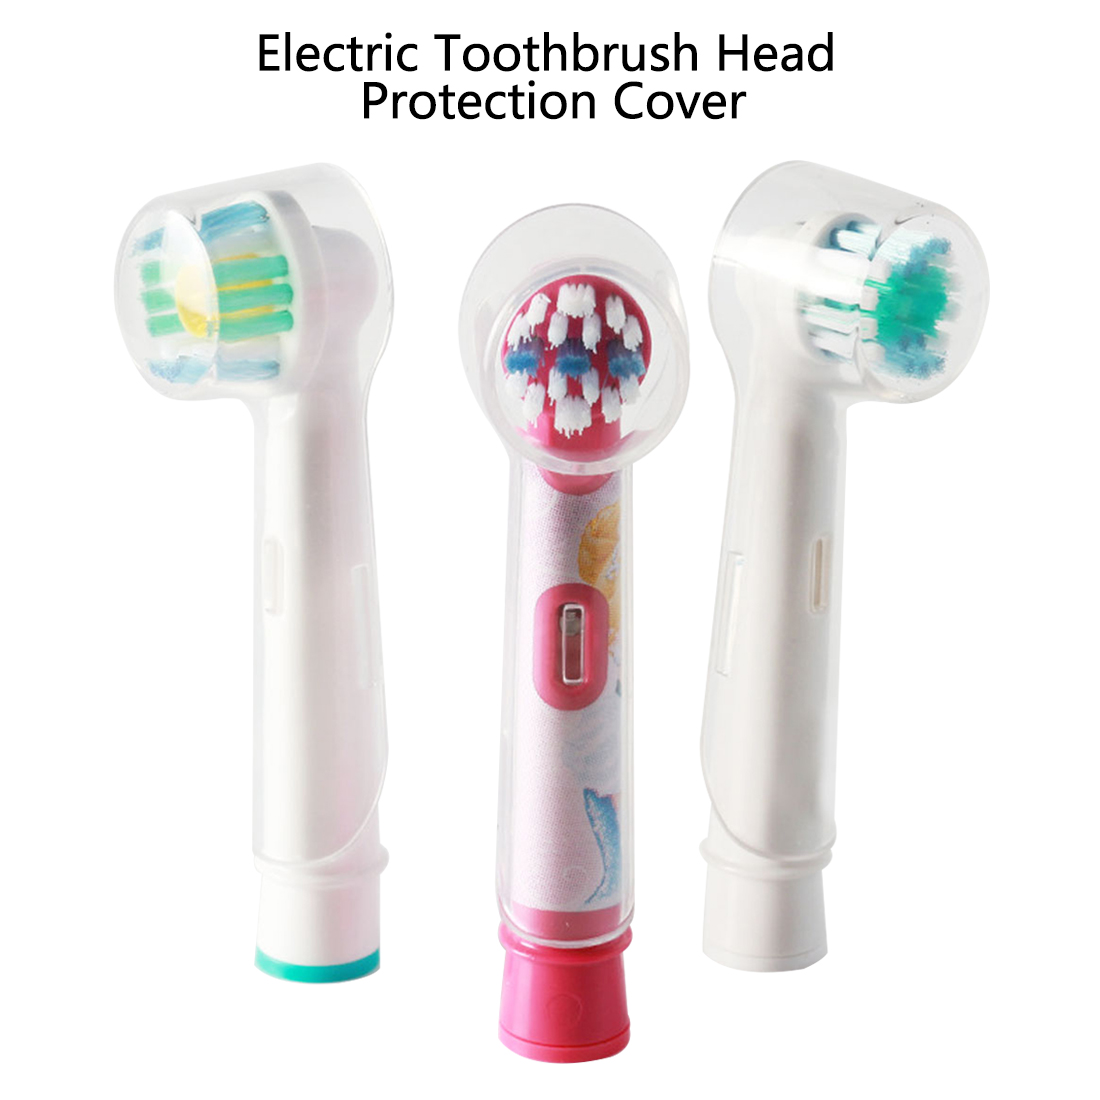 4pcs/Set Replacement Toothbrush Head Case Holder Home Camping Travel Tool Electric Toothbrush Heads Protective Cover Caps image